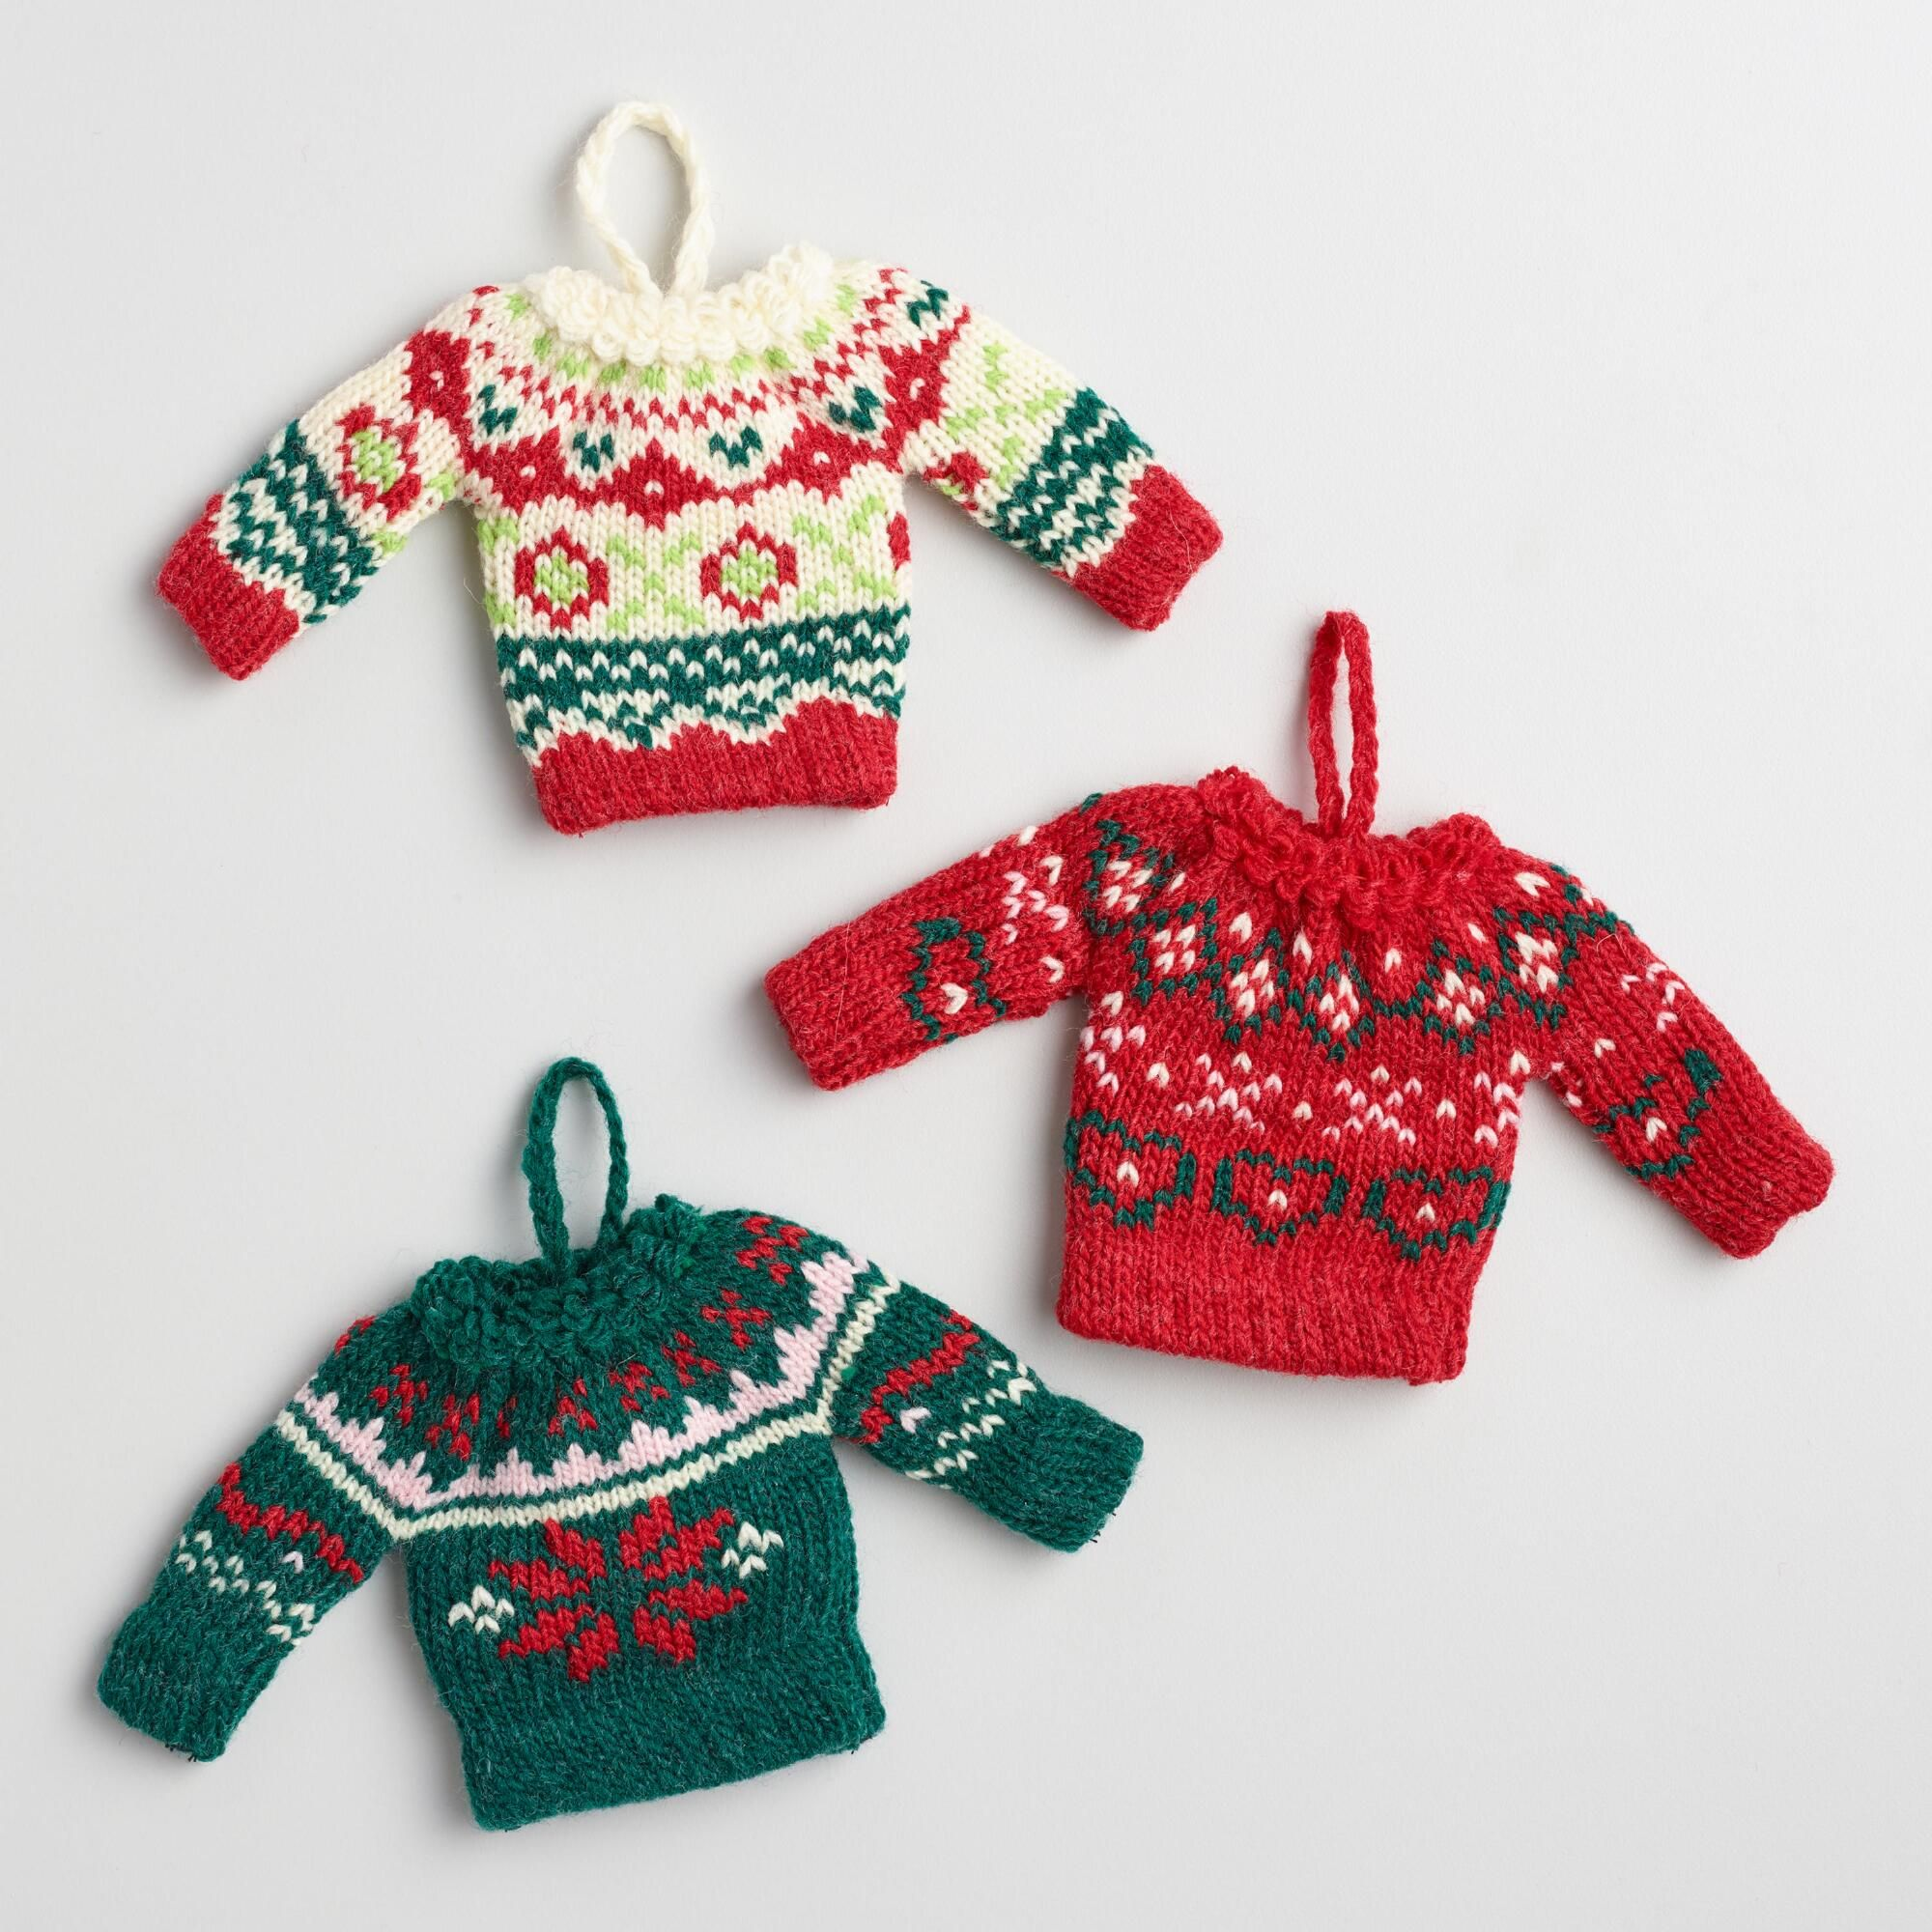 Handcrafted of yarn, these mini holiday sweater ornaments